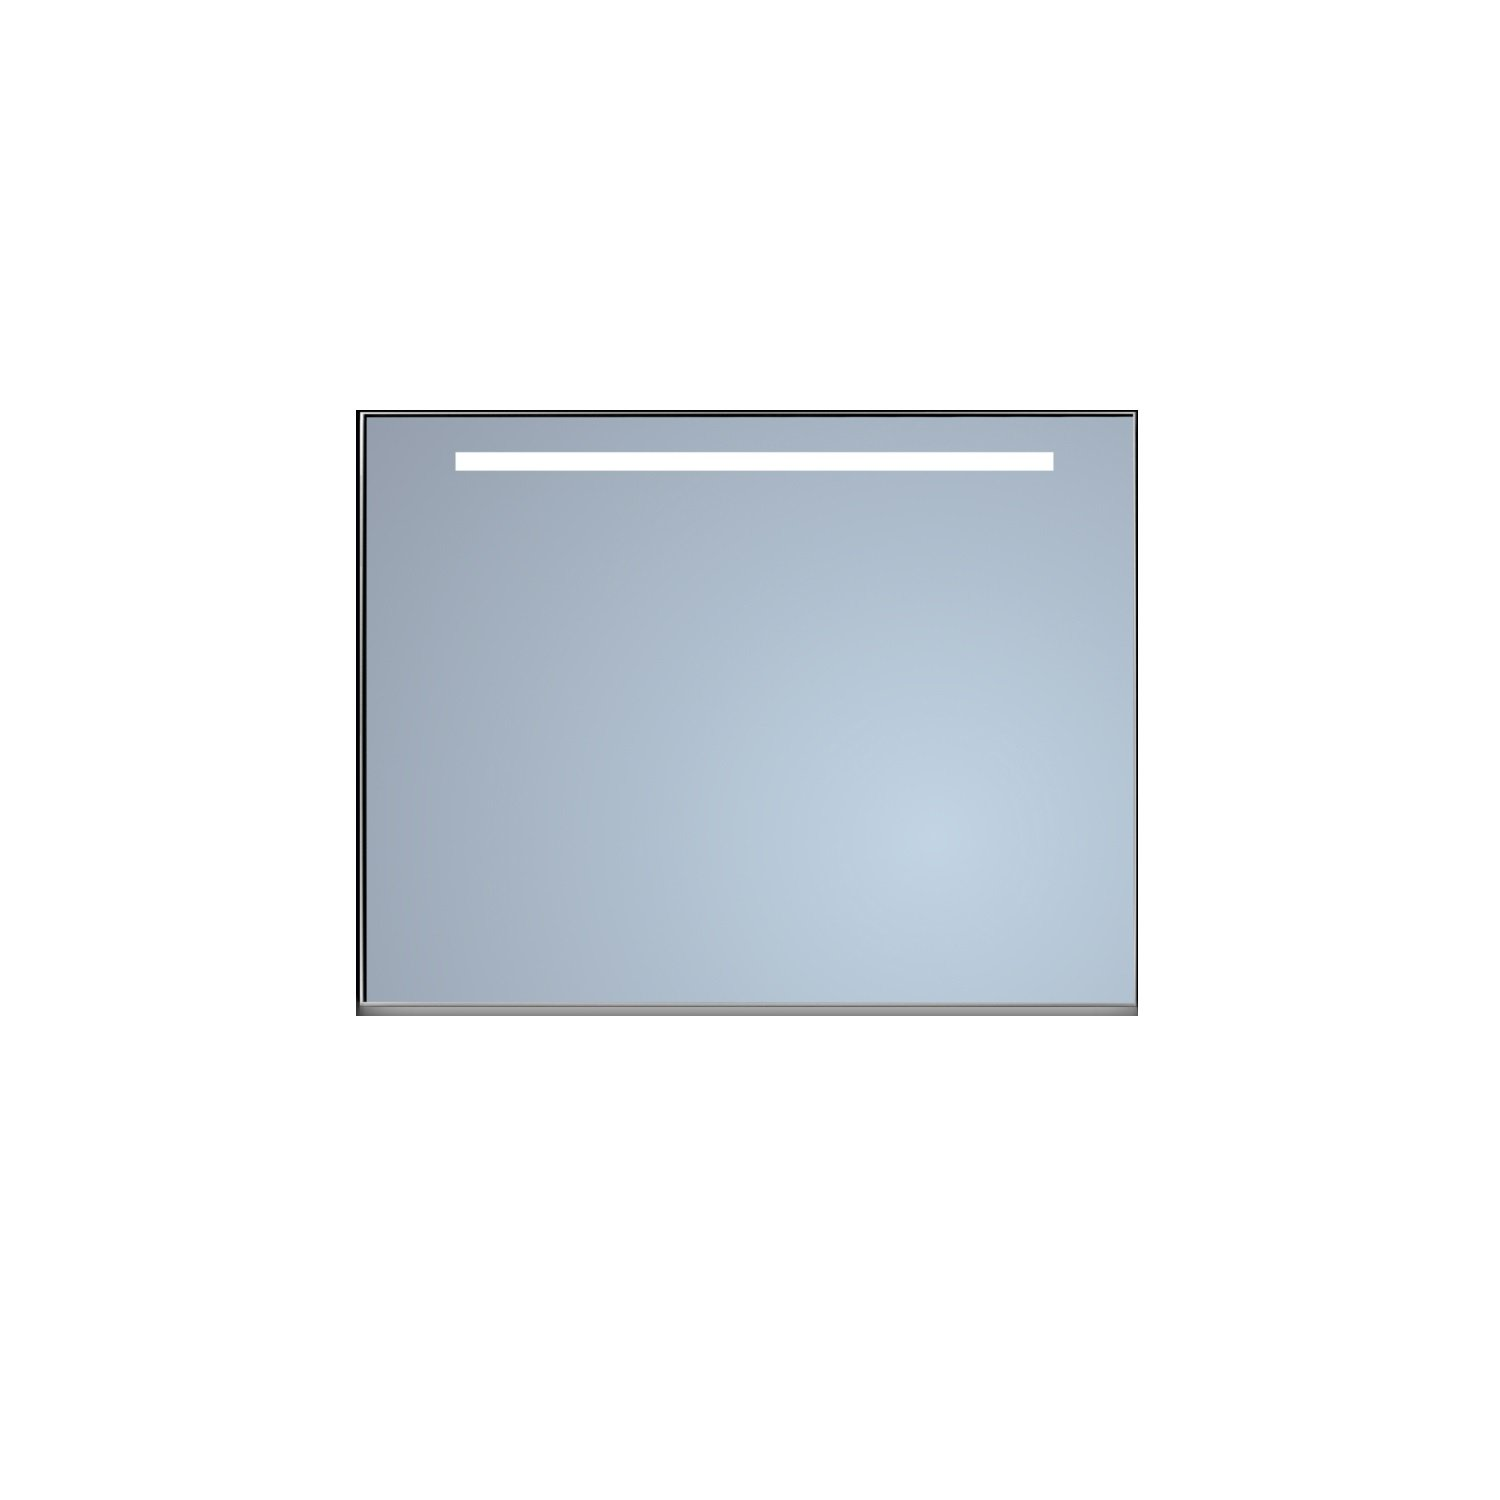 Badkamerspiegel Sanicare Q-Mirrors Ambiance en 'Warm White' LED-verlichting 70x60x3,5 Chroom Omlijsting